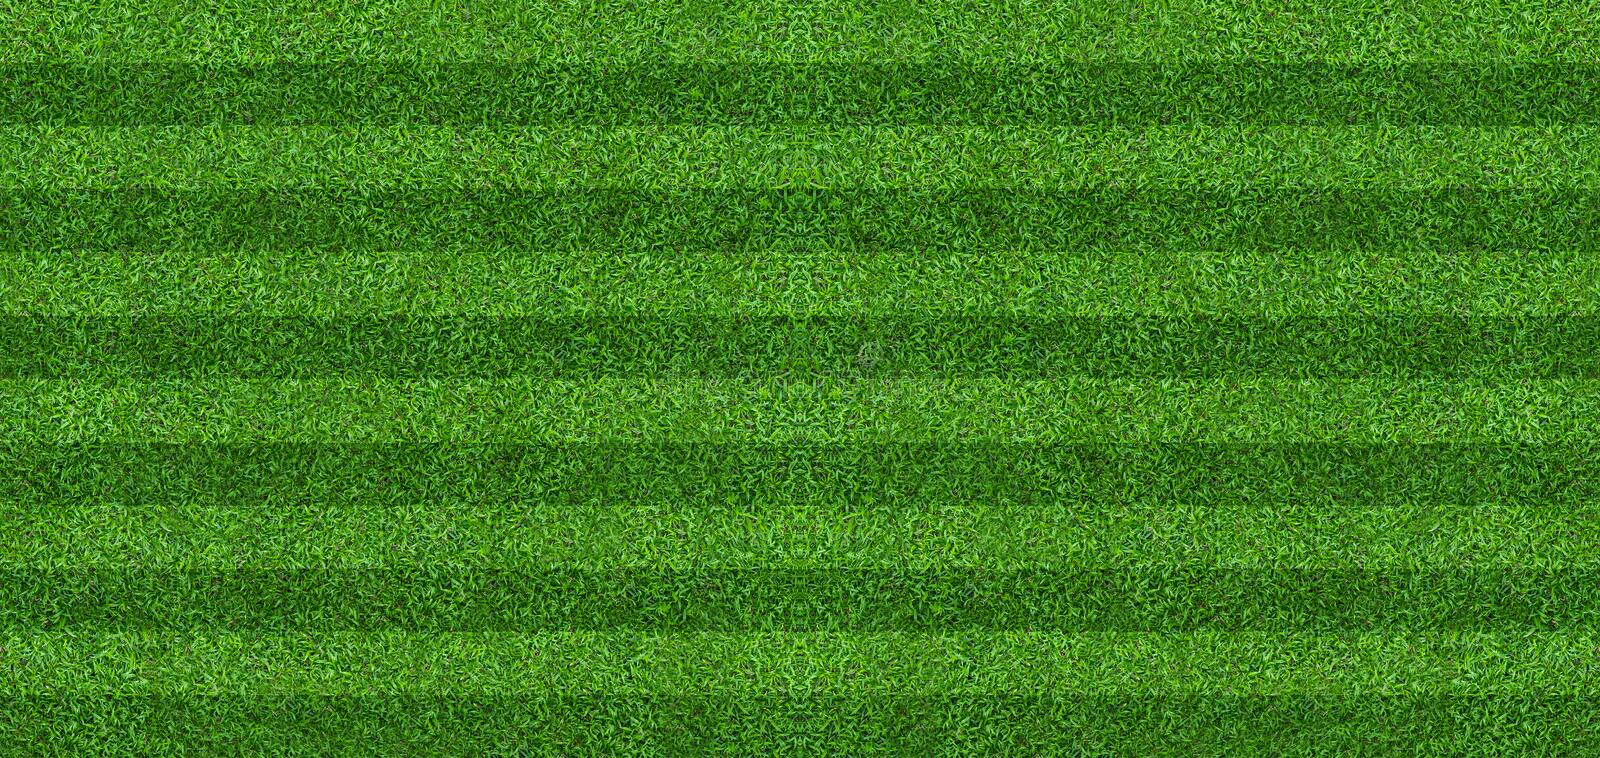 Green grass field background for soccer and football sports. Green lawn pattern and texture background. Close-up royalty free stock photo